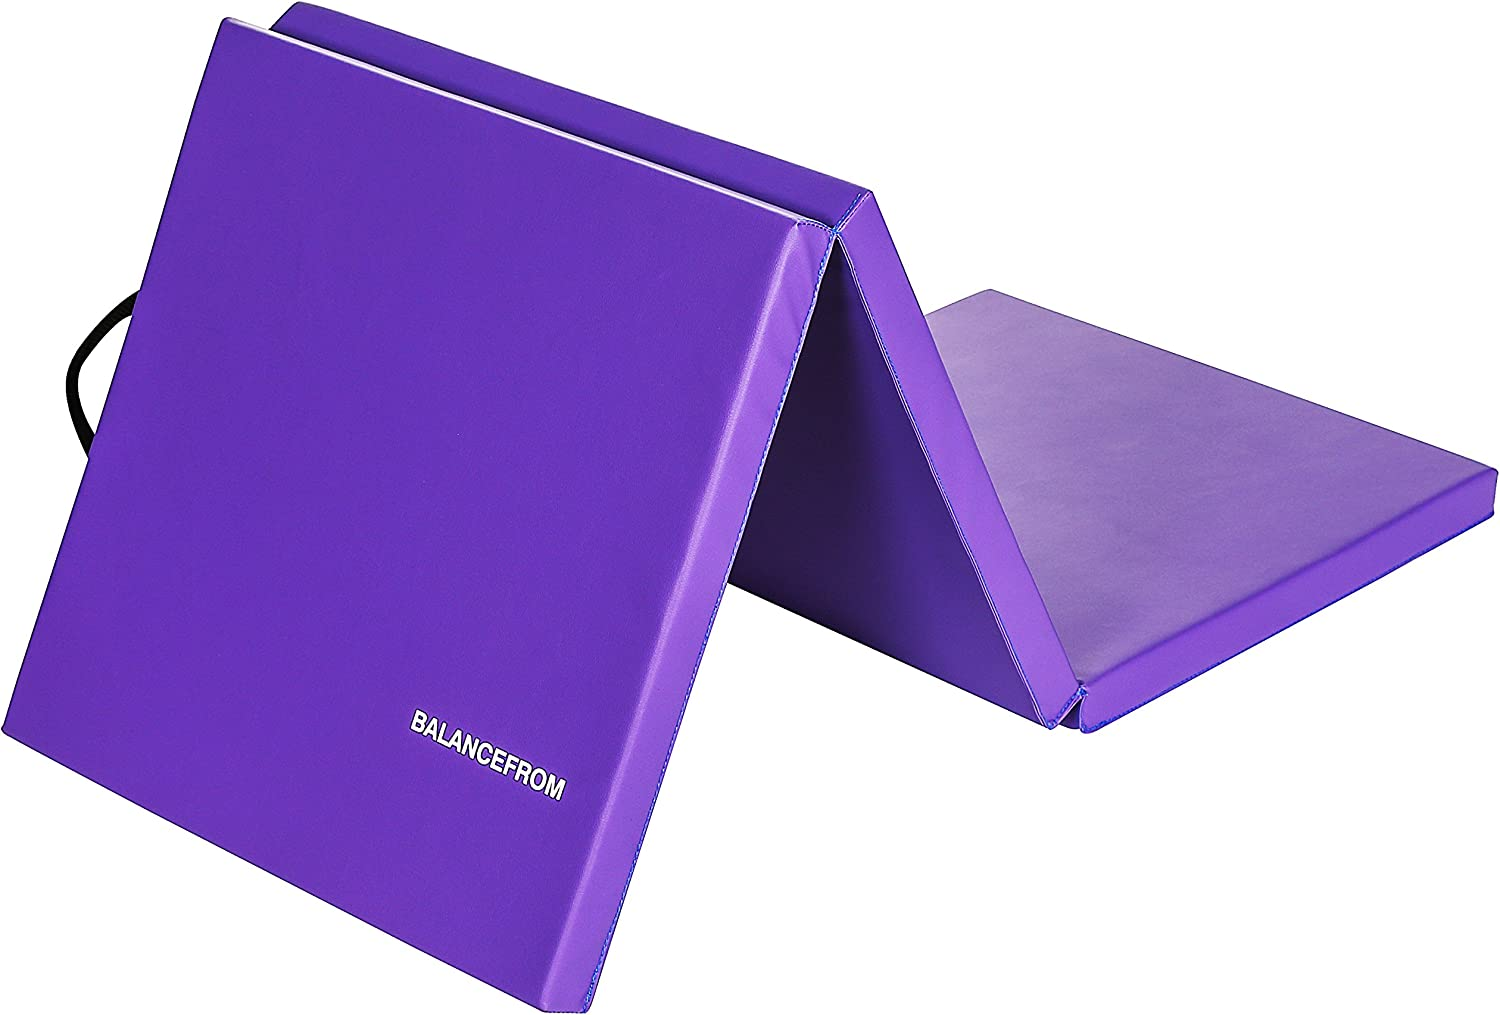 """BalanceFrom 2"""" Thick Tri-Fold Folding Exercise Mat with Carrying Handles for MMA, Gymnastics and Home Gym Protective Flooring (Purple) : Sports & Outdoors"""